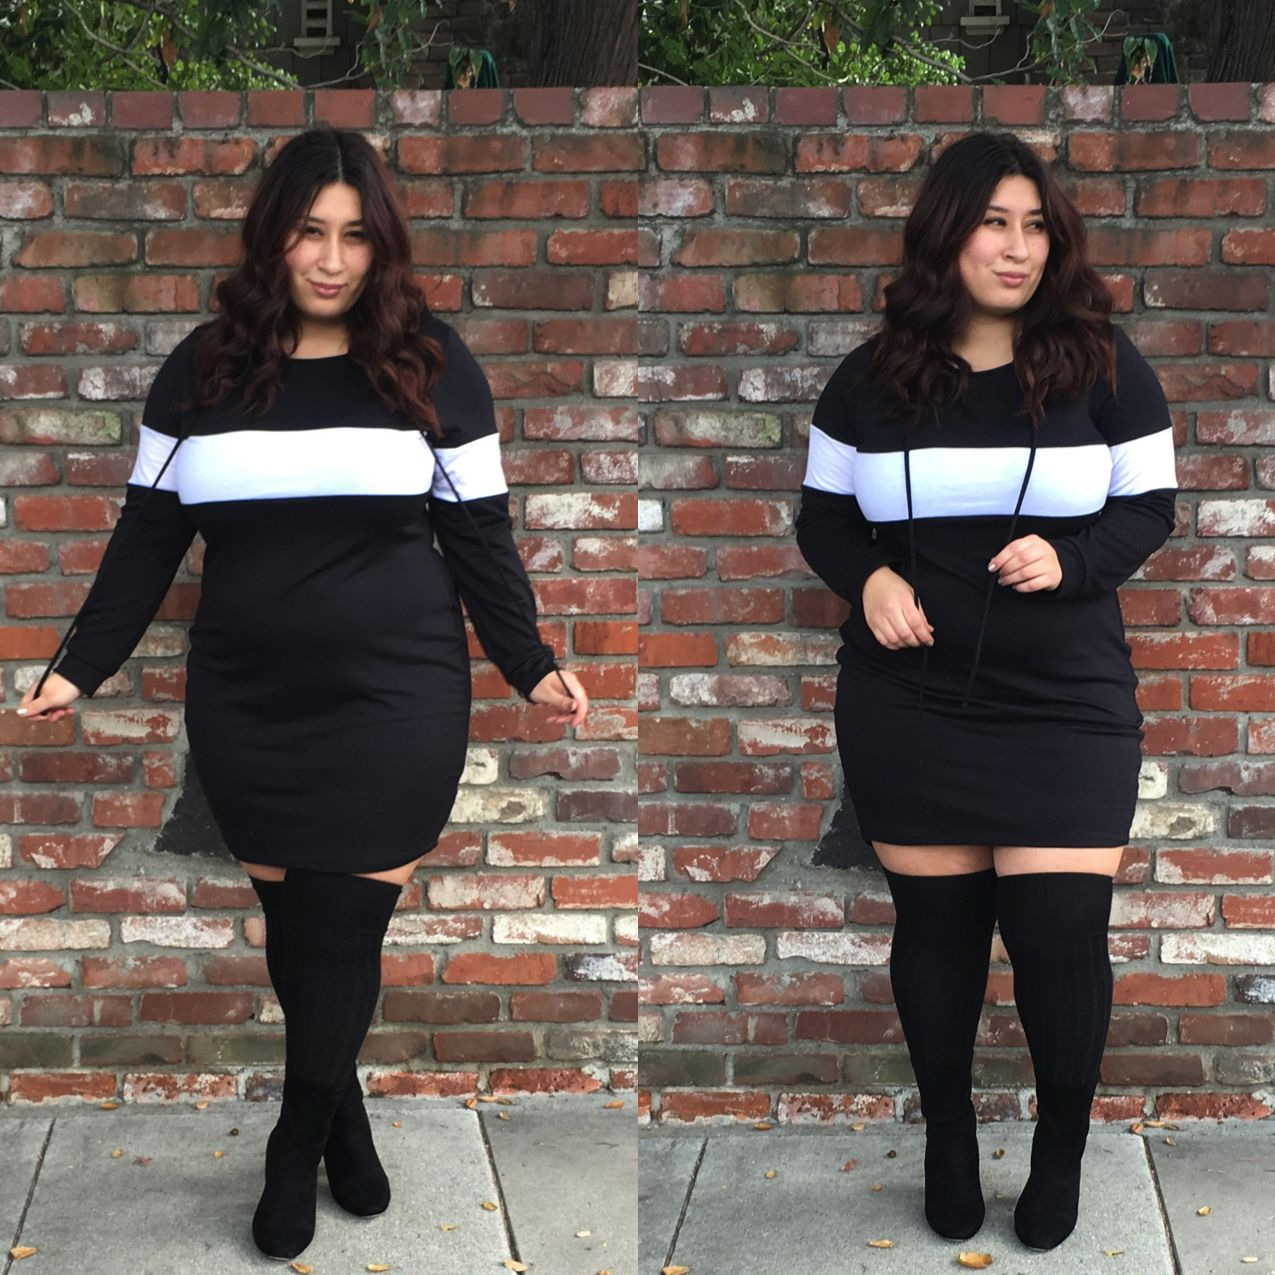 Plus Size Valentine's Day Outfit Movie Date 2 | FTF + Offical Blog ...